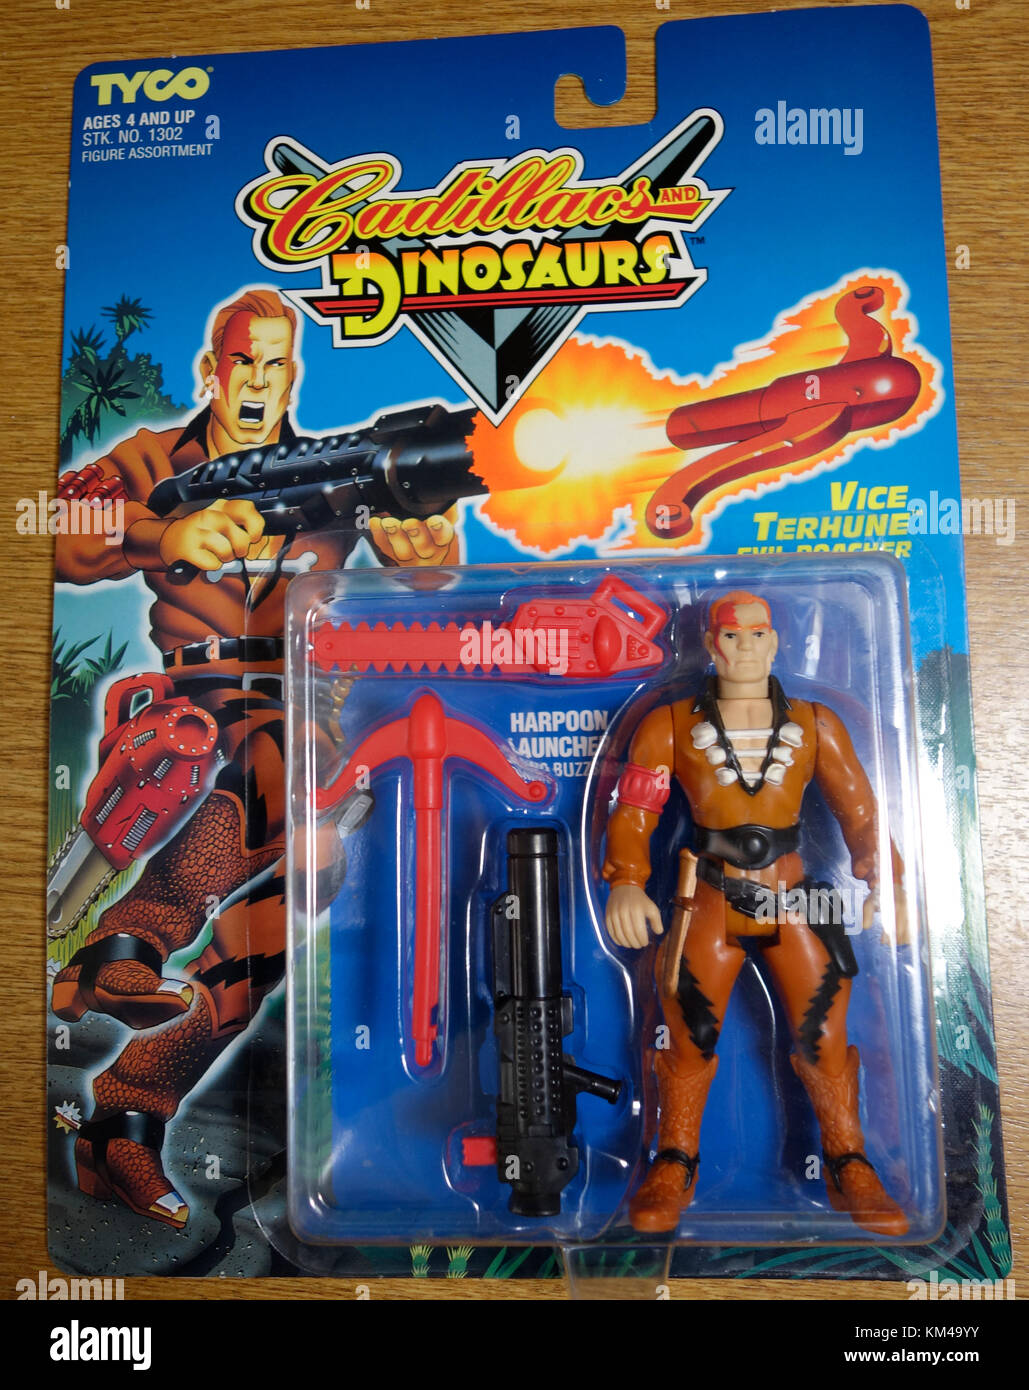 Cadillacs and Dinosaurs carded figure - Stock Image